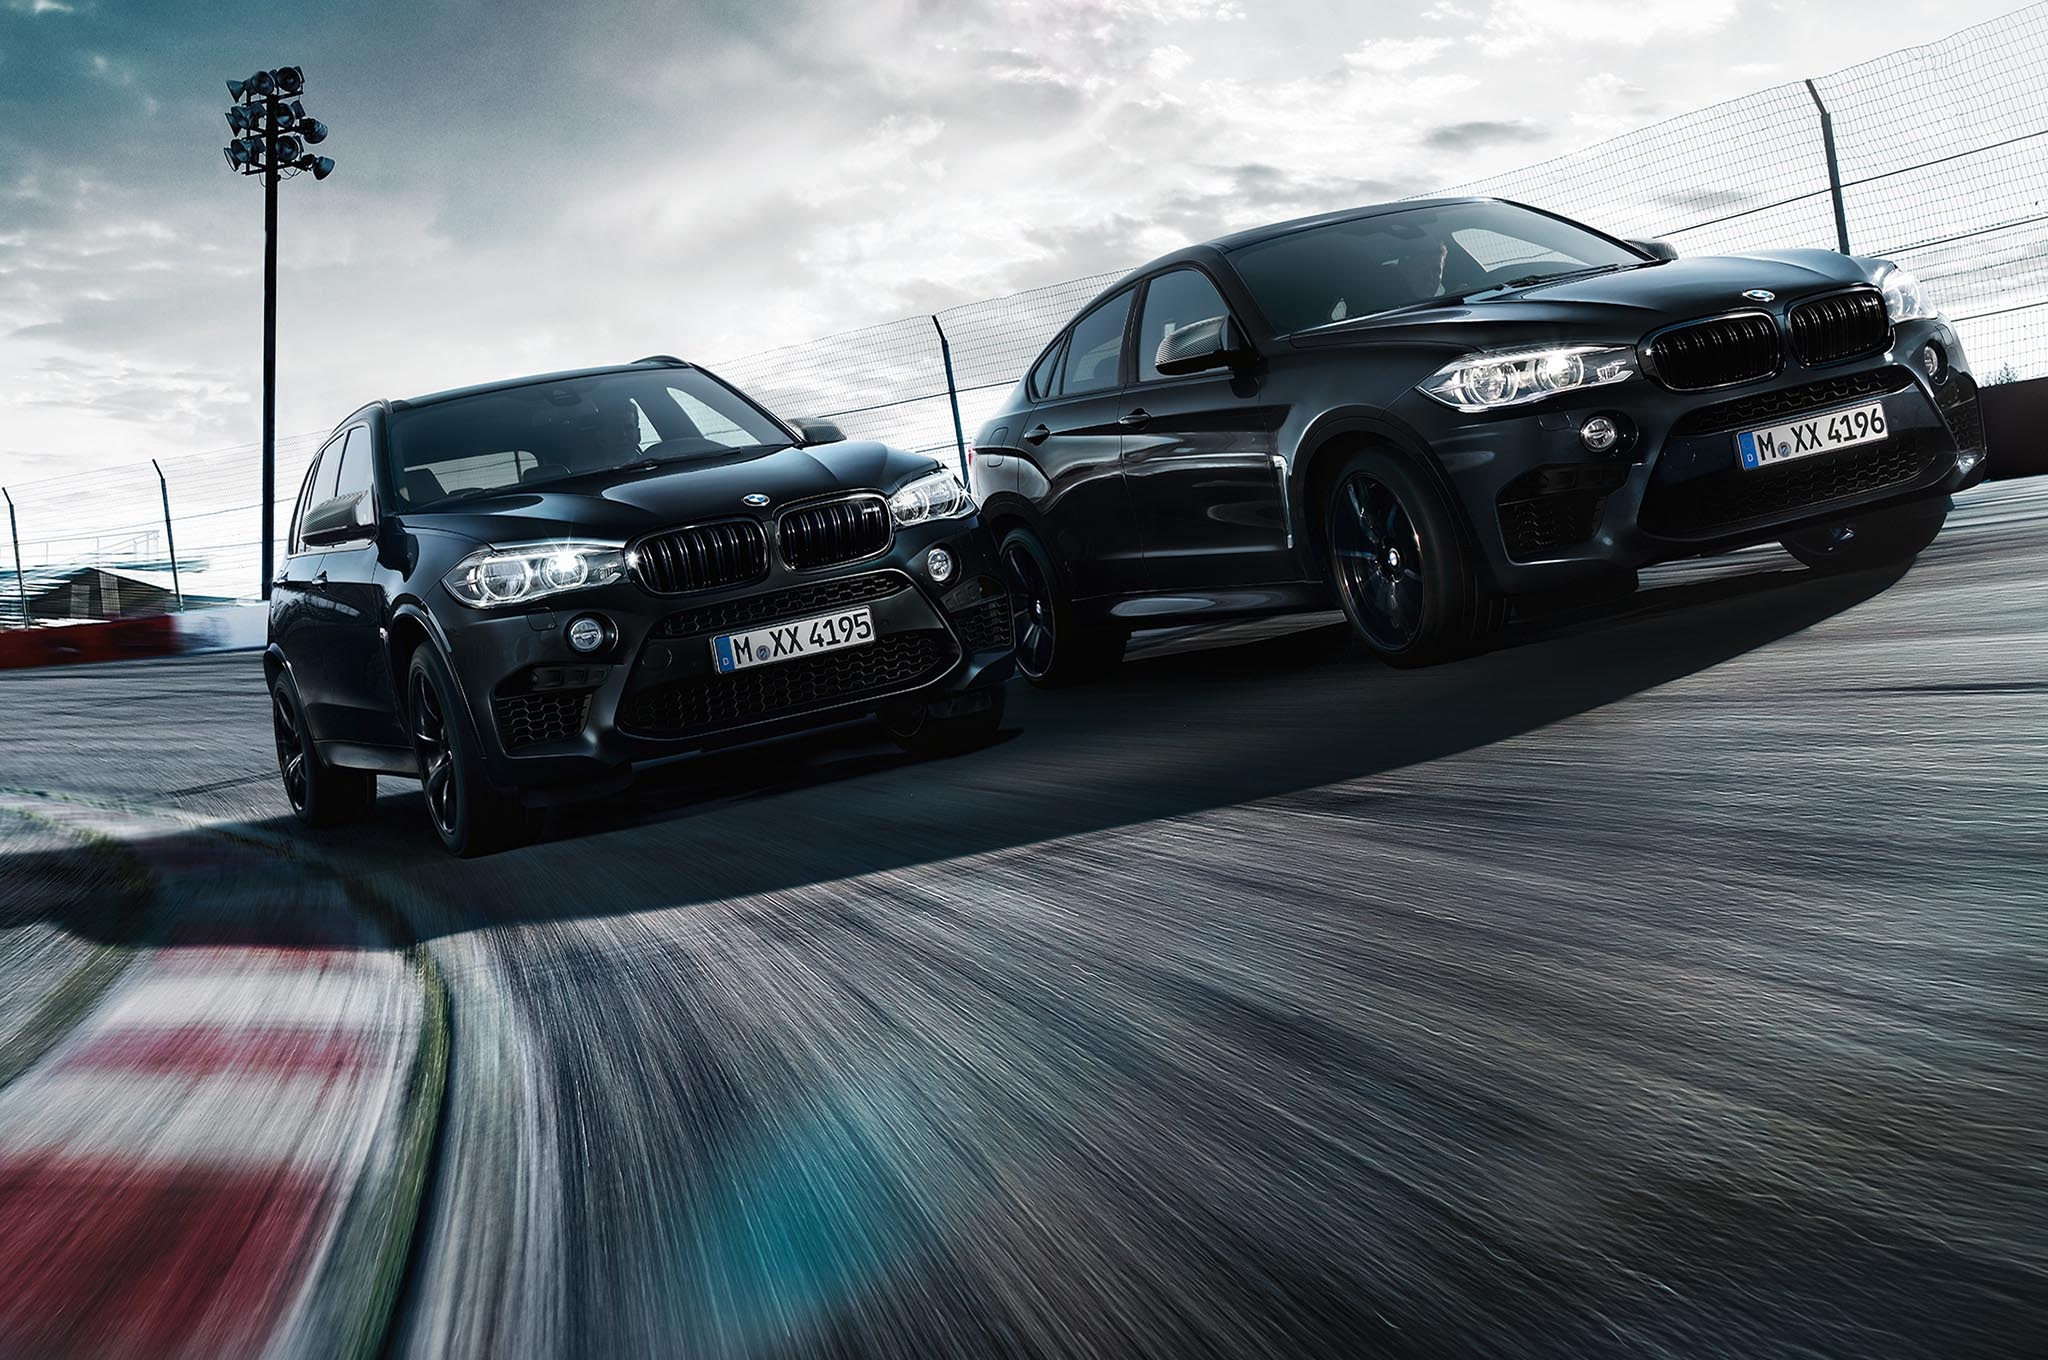 The Black Fire Edition Of The BMW X5 M And BMW X6 M Track